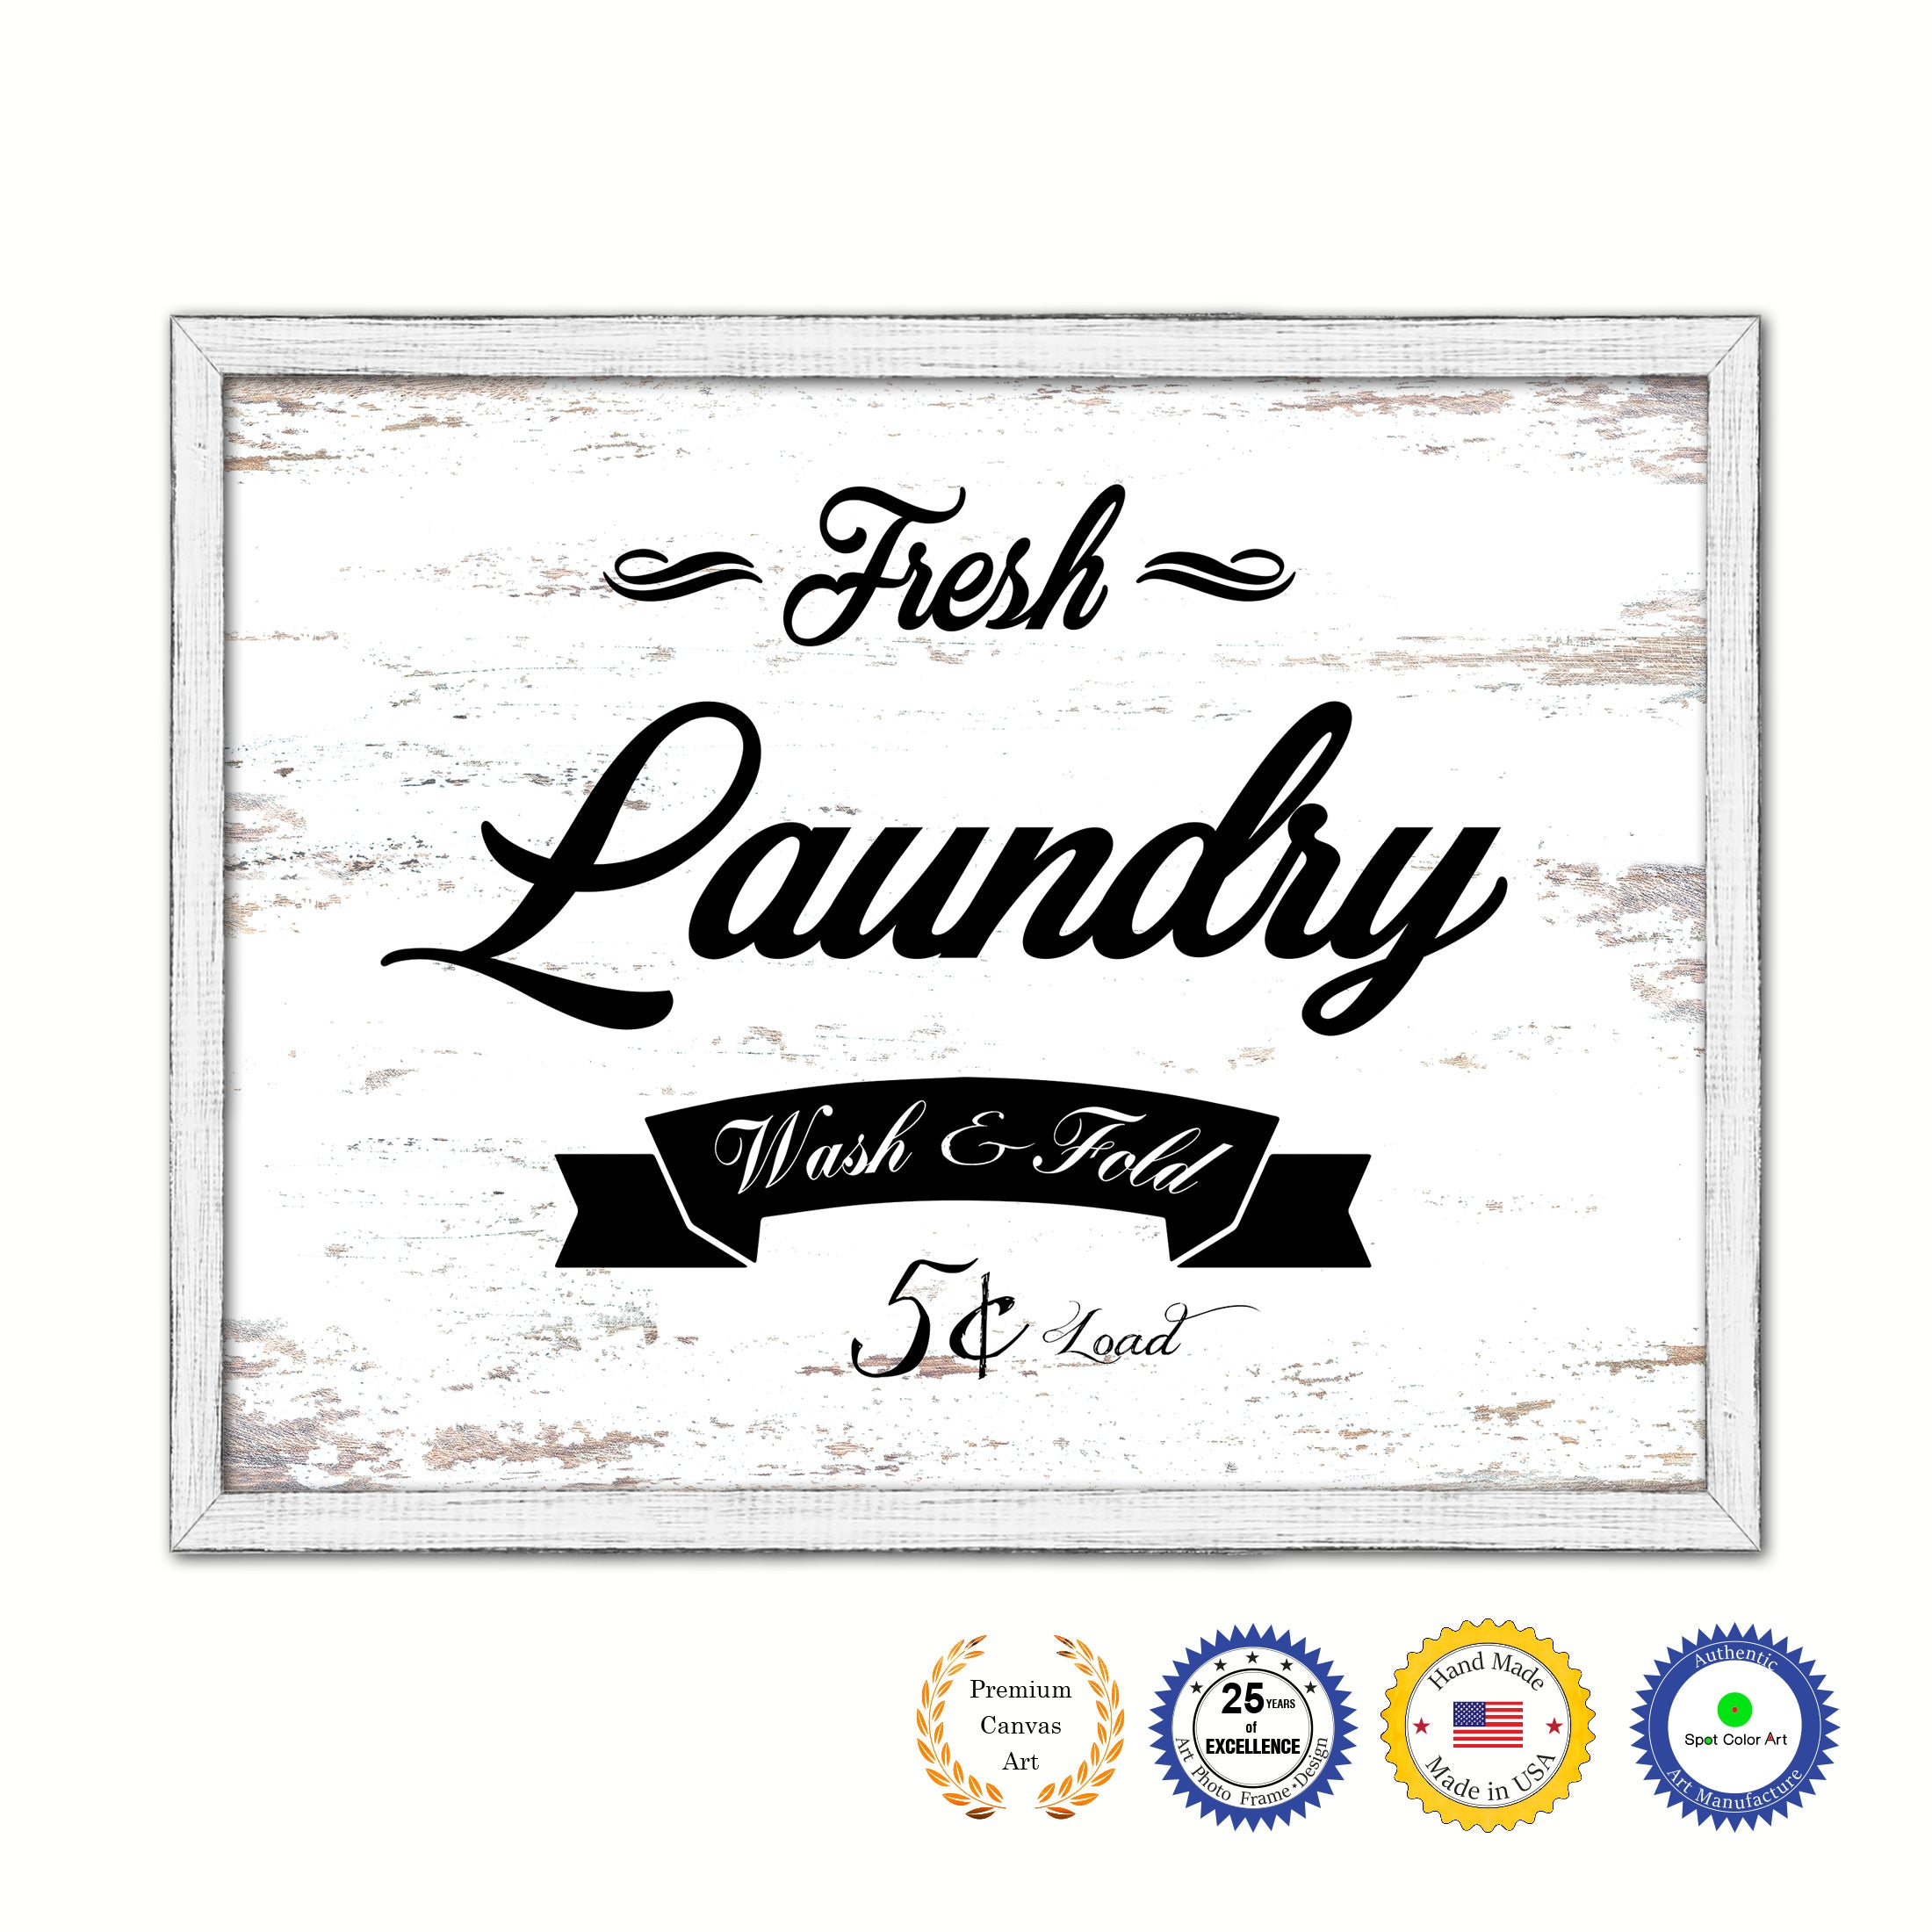 Fresh Laundry Vintage Sign Gifts Home Decor Wall Art Canvas Print with Custom Picture Frame